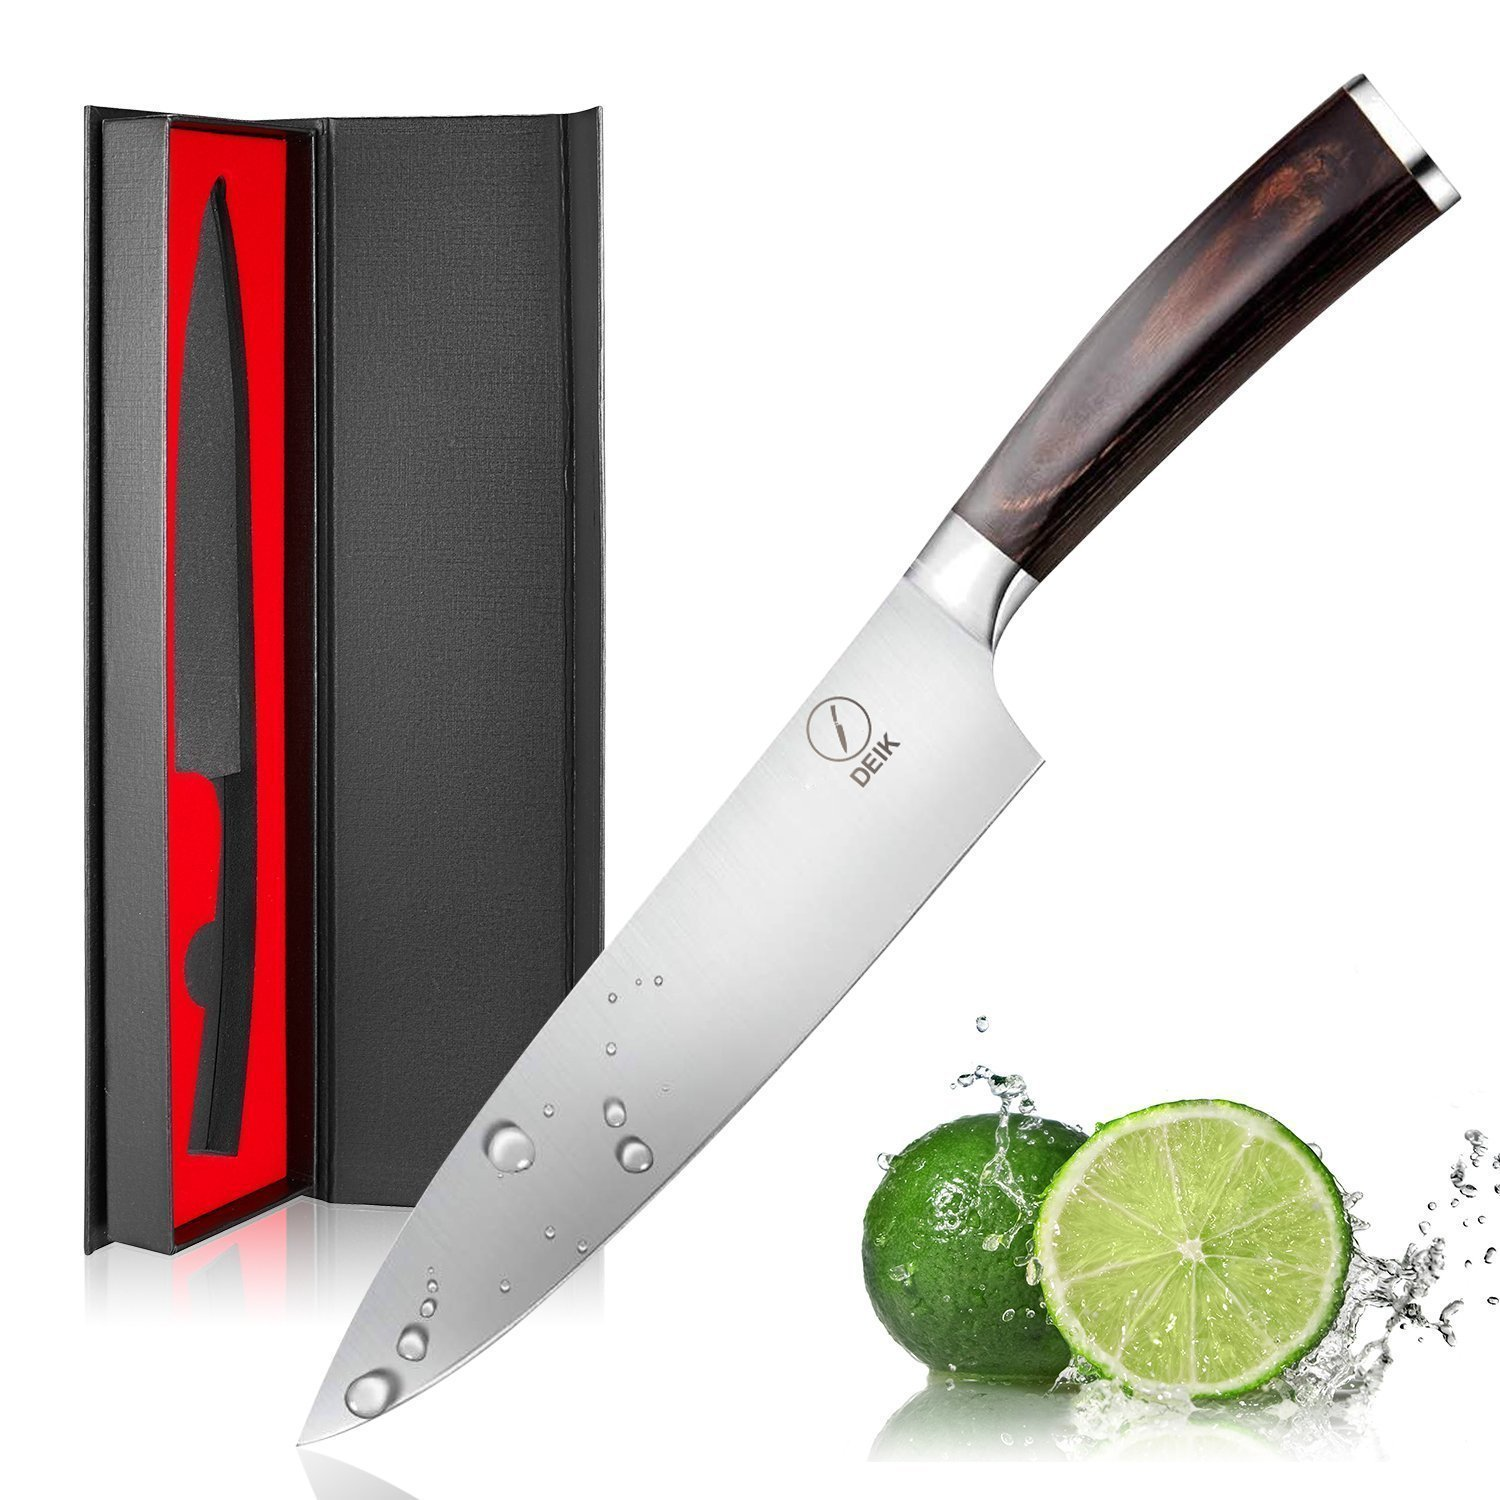 Deik Chef Knife, 8 Inch Kitchen Knife with 1.4116 Imported Stainless Steel, Professional Grade Balance and Super Sharp with Ergnonomic Classy Wooden Handle